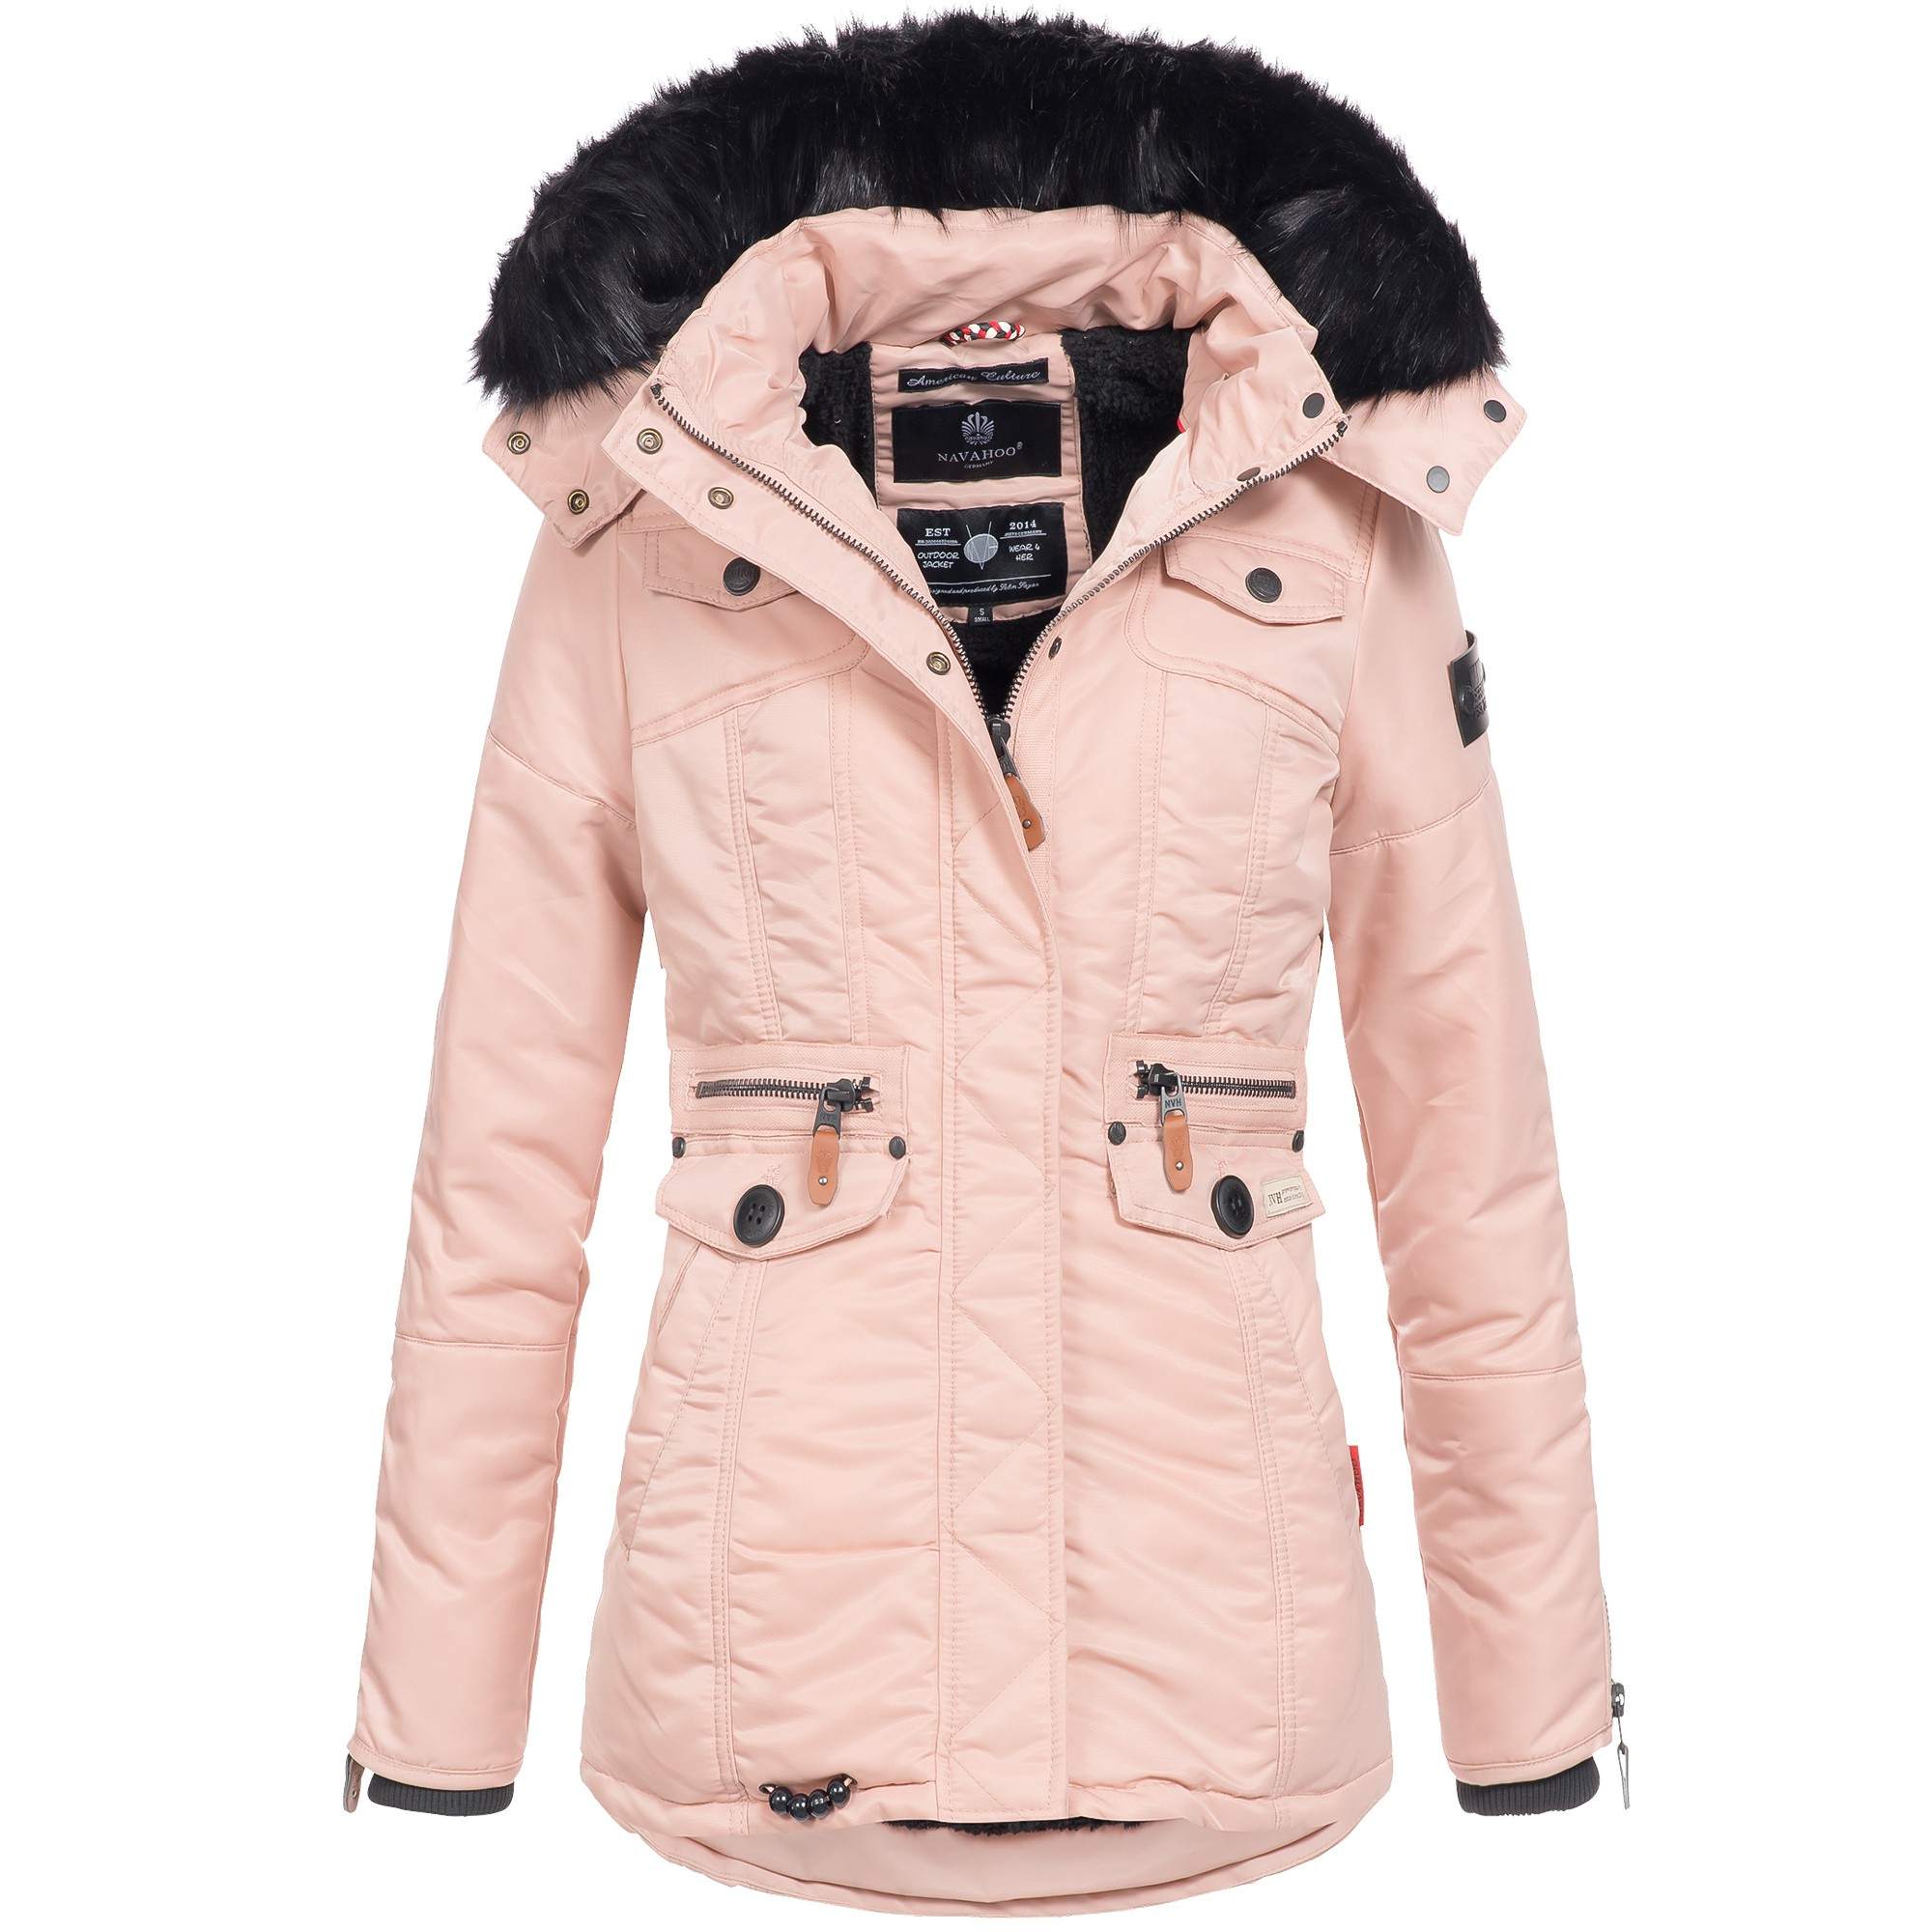 navahoo schaetzchen damen jacke parka mantel winterjacke warm gef ttert xs xxl ebay. Black Bedroom Furniture Sets. Home Design Ideas